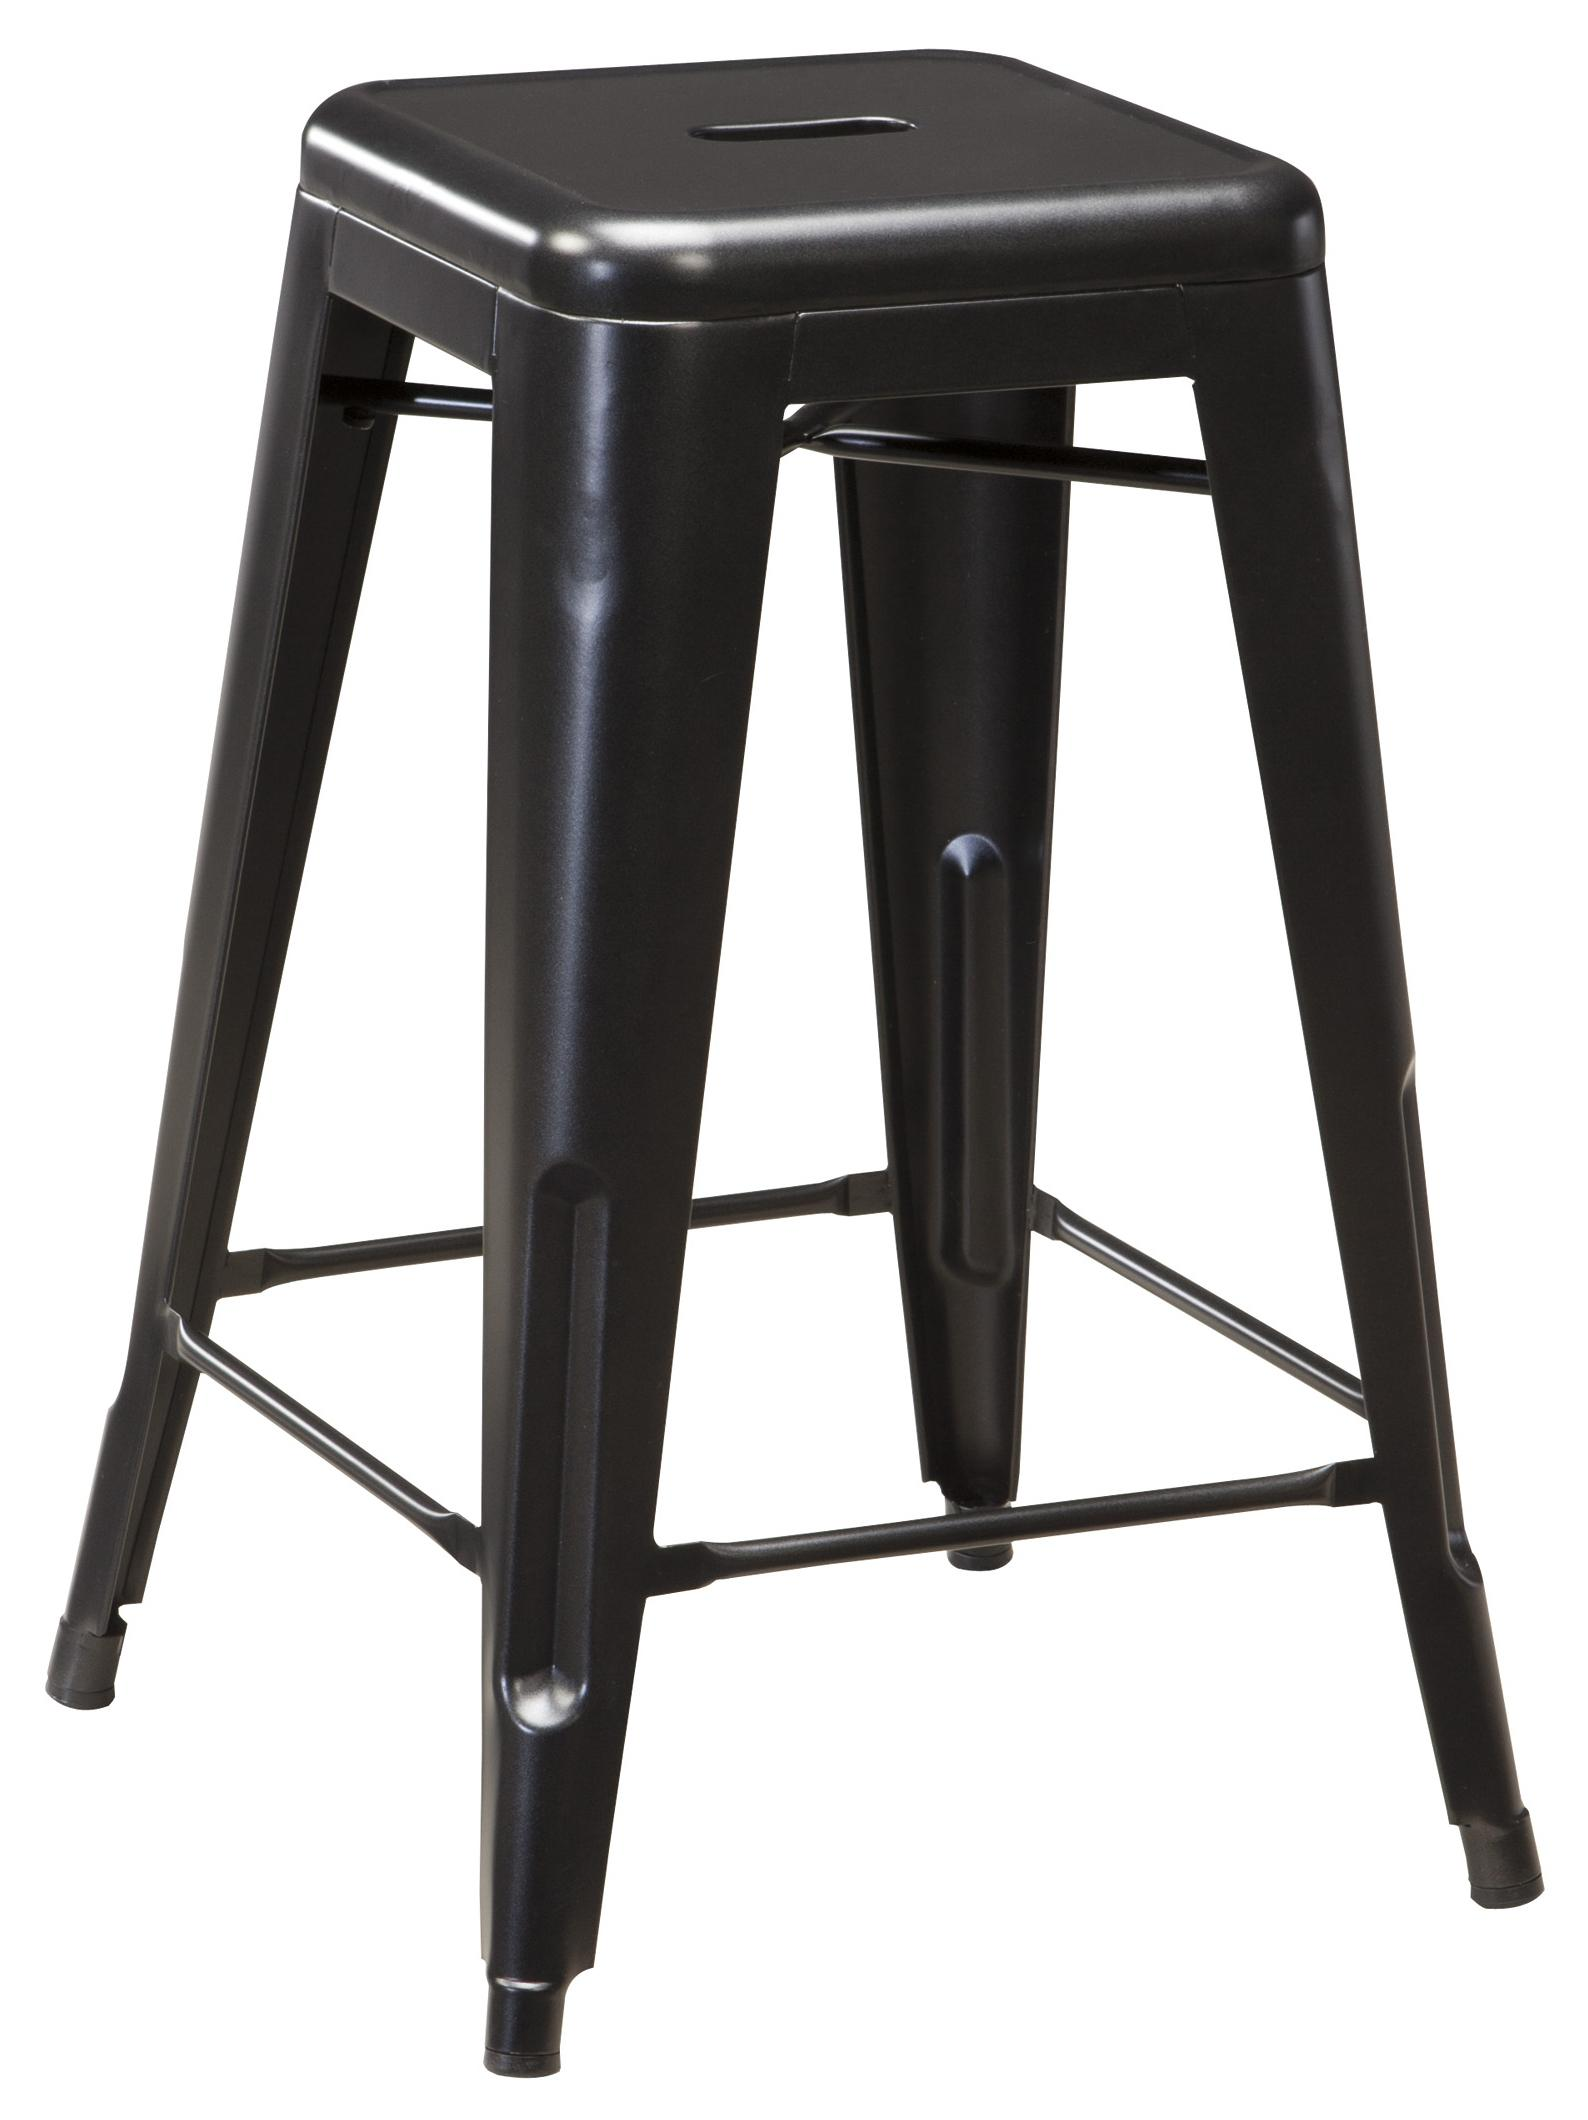 Signature Design by Ashley Pinnadel Stool - Item Number: D542-024